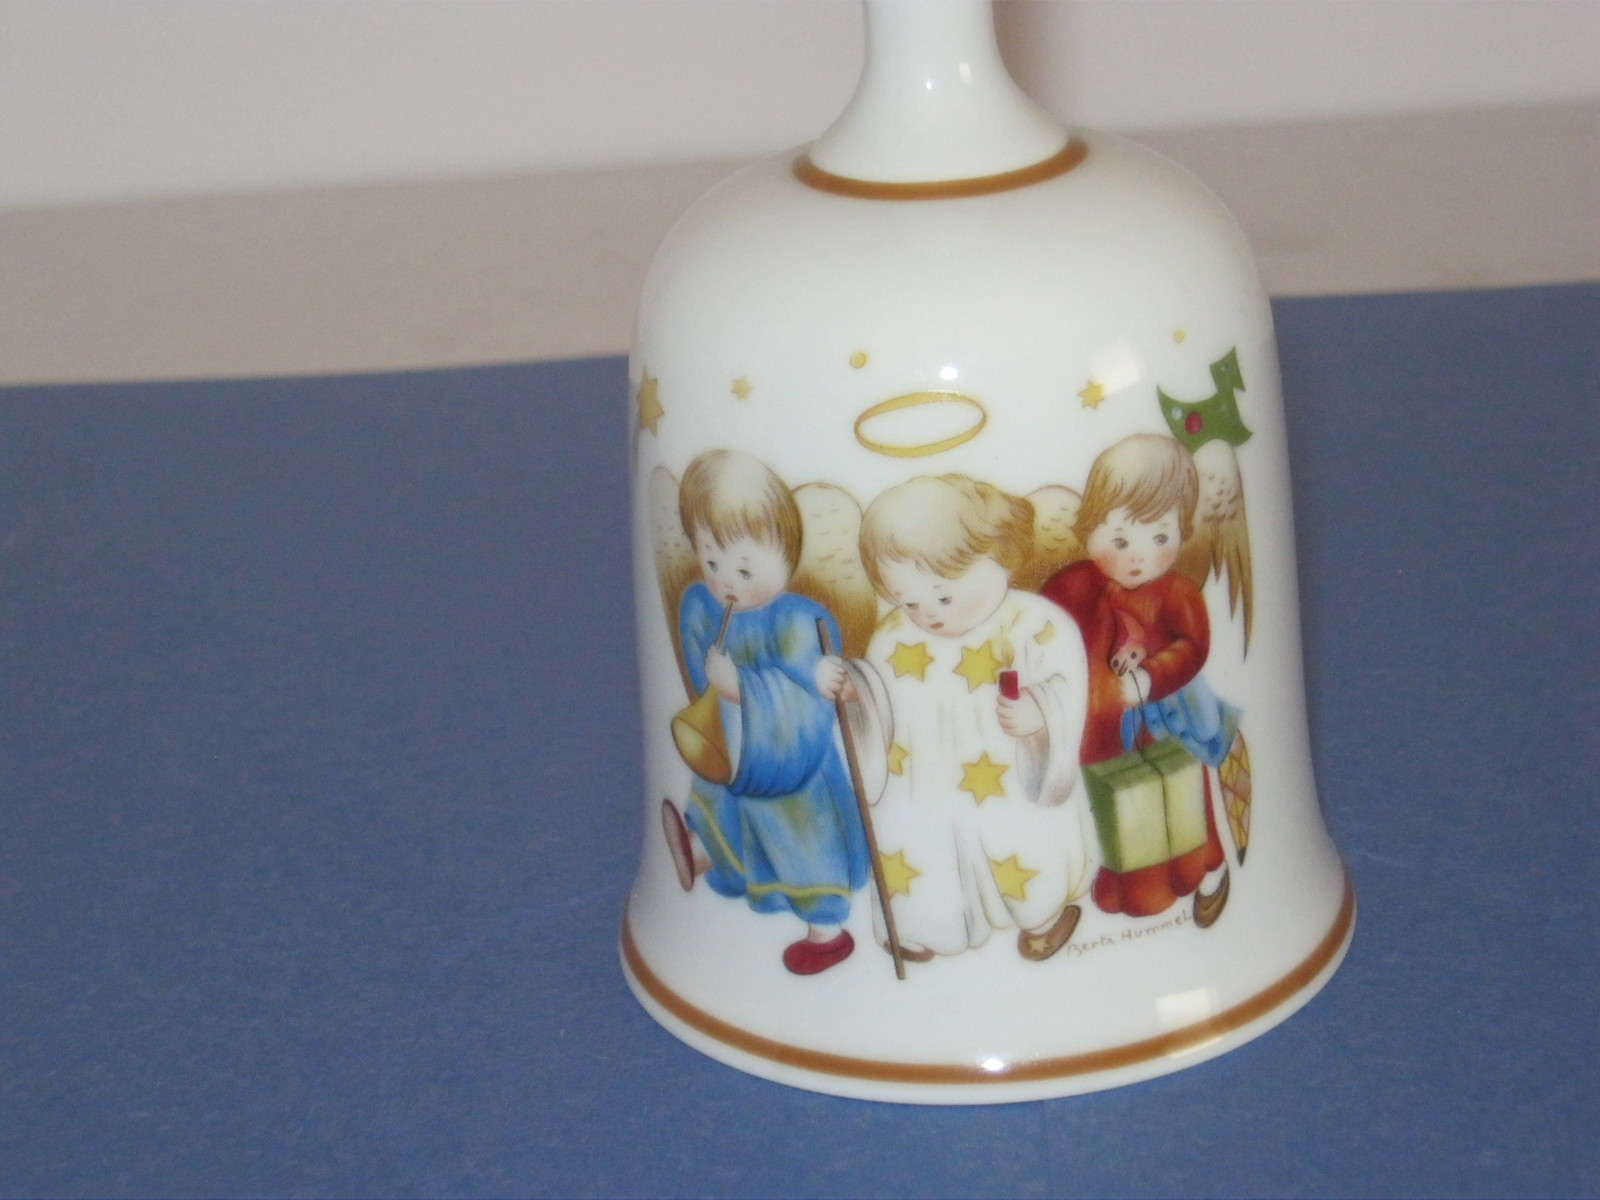 1978 BERTA UMMEL CHRISTMAS BELL BY SCHMID BROTHERS IN GERMANY. - $10.00